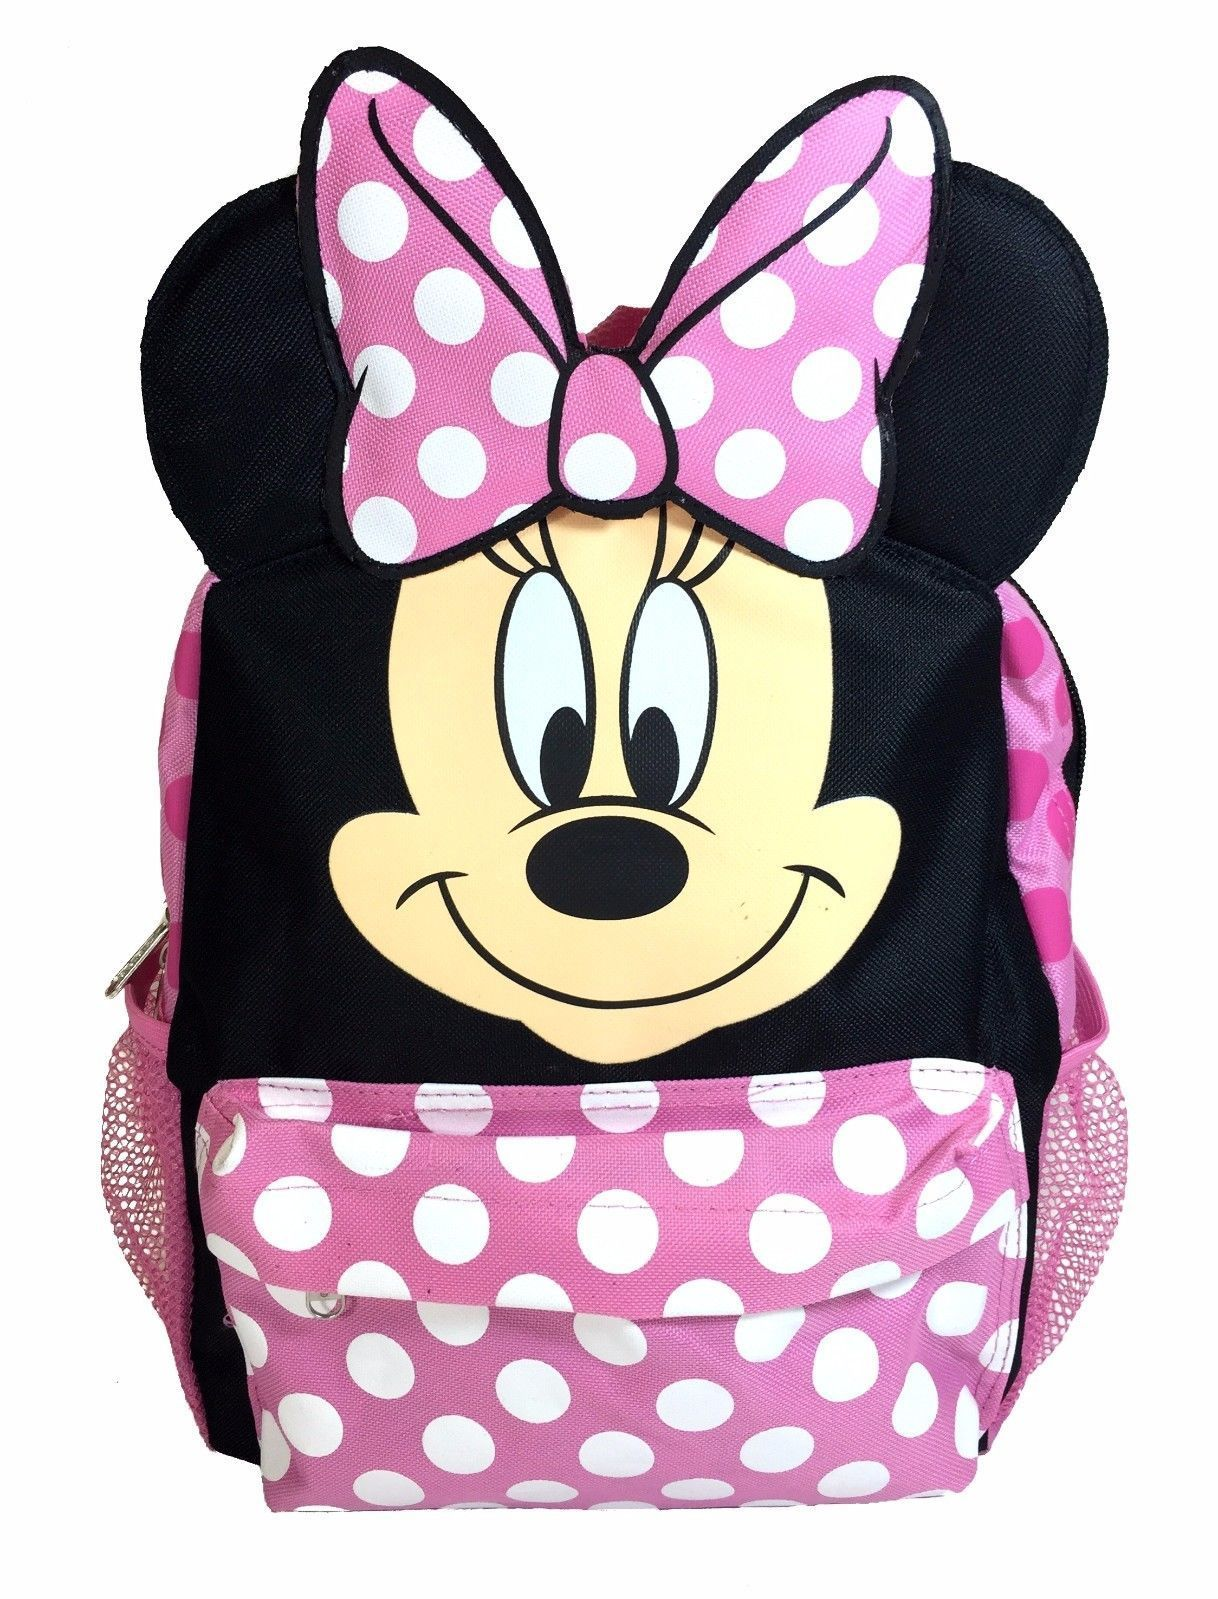 "Minnie Mouse Happy Face 3D Ears 16"" Large Backpack School Bag - Ace Handbag"